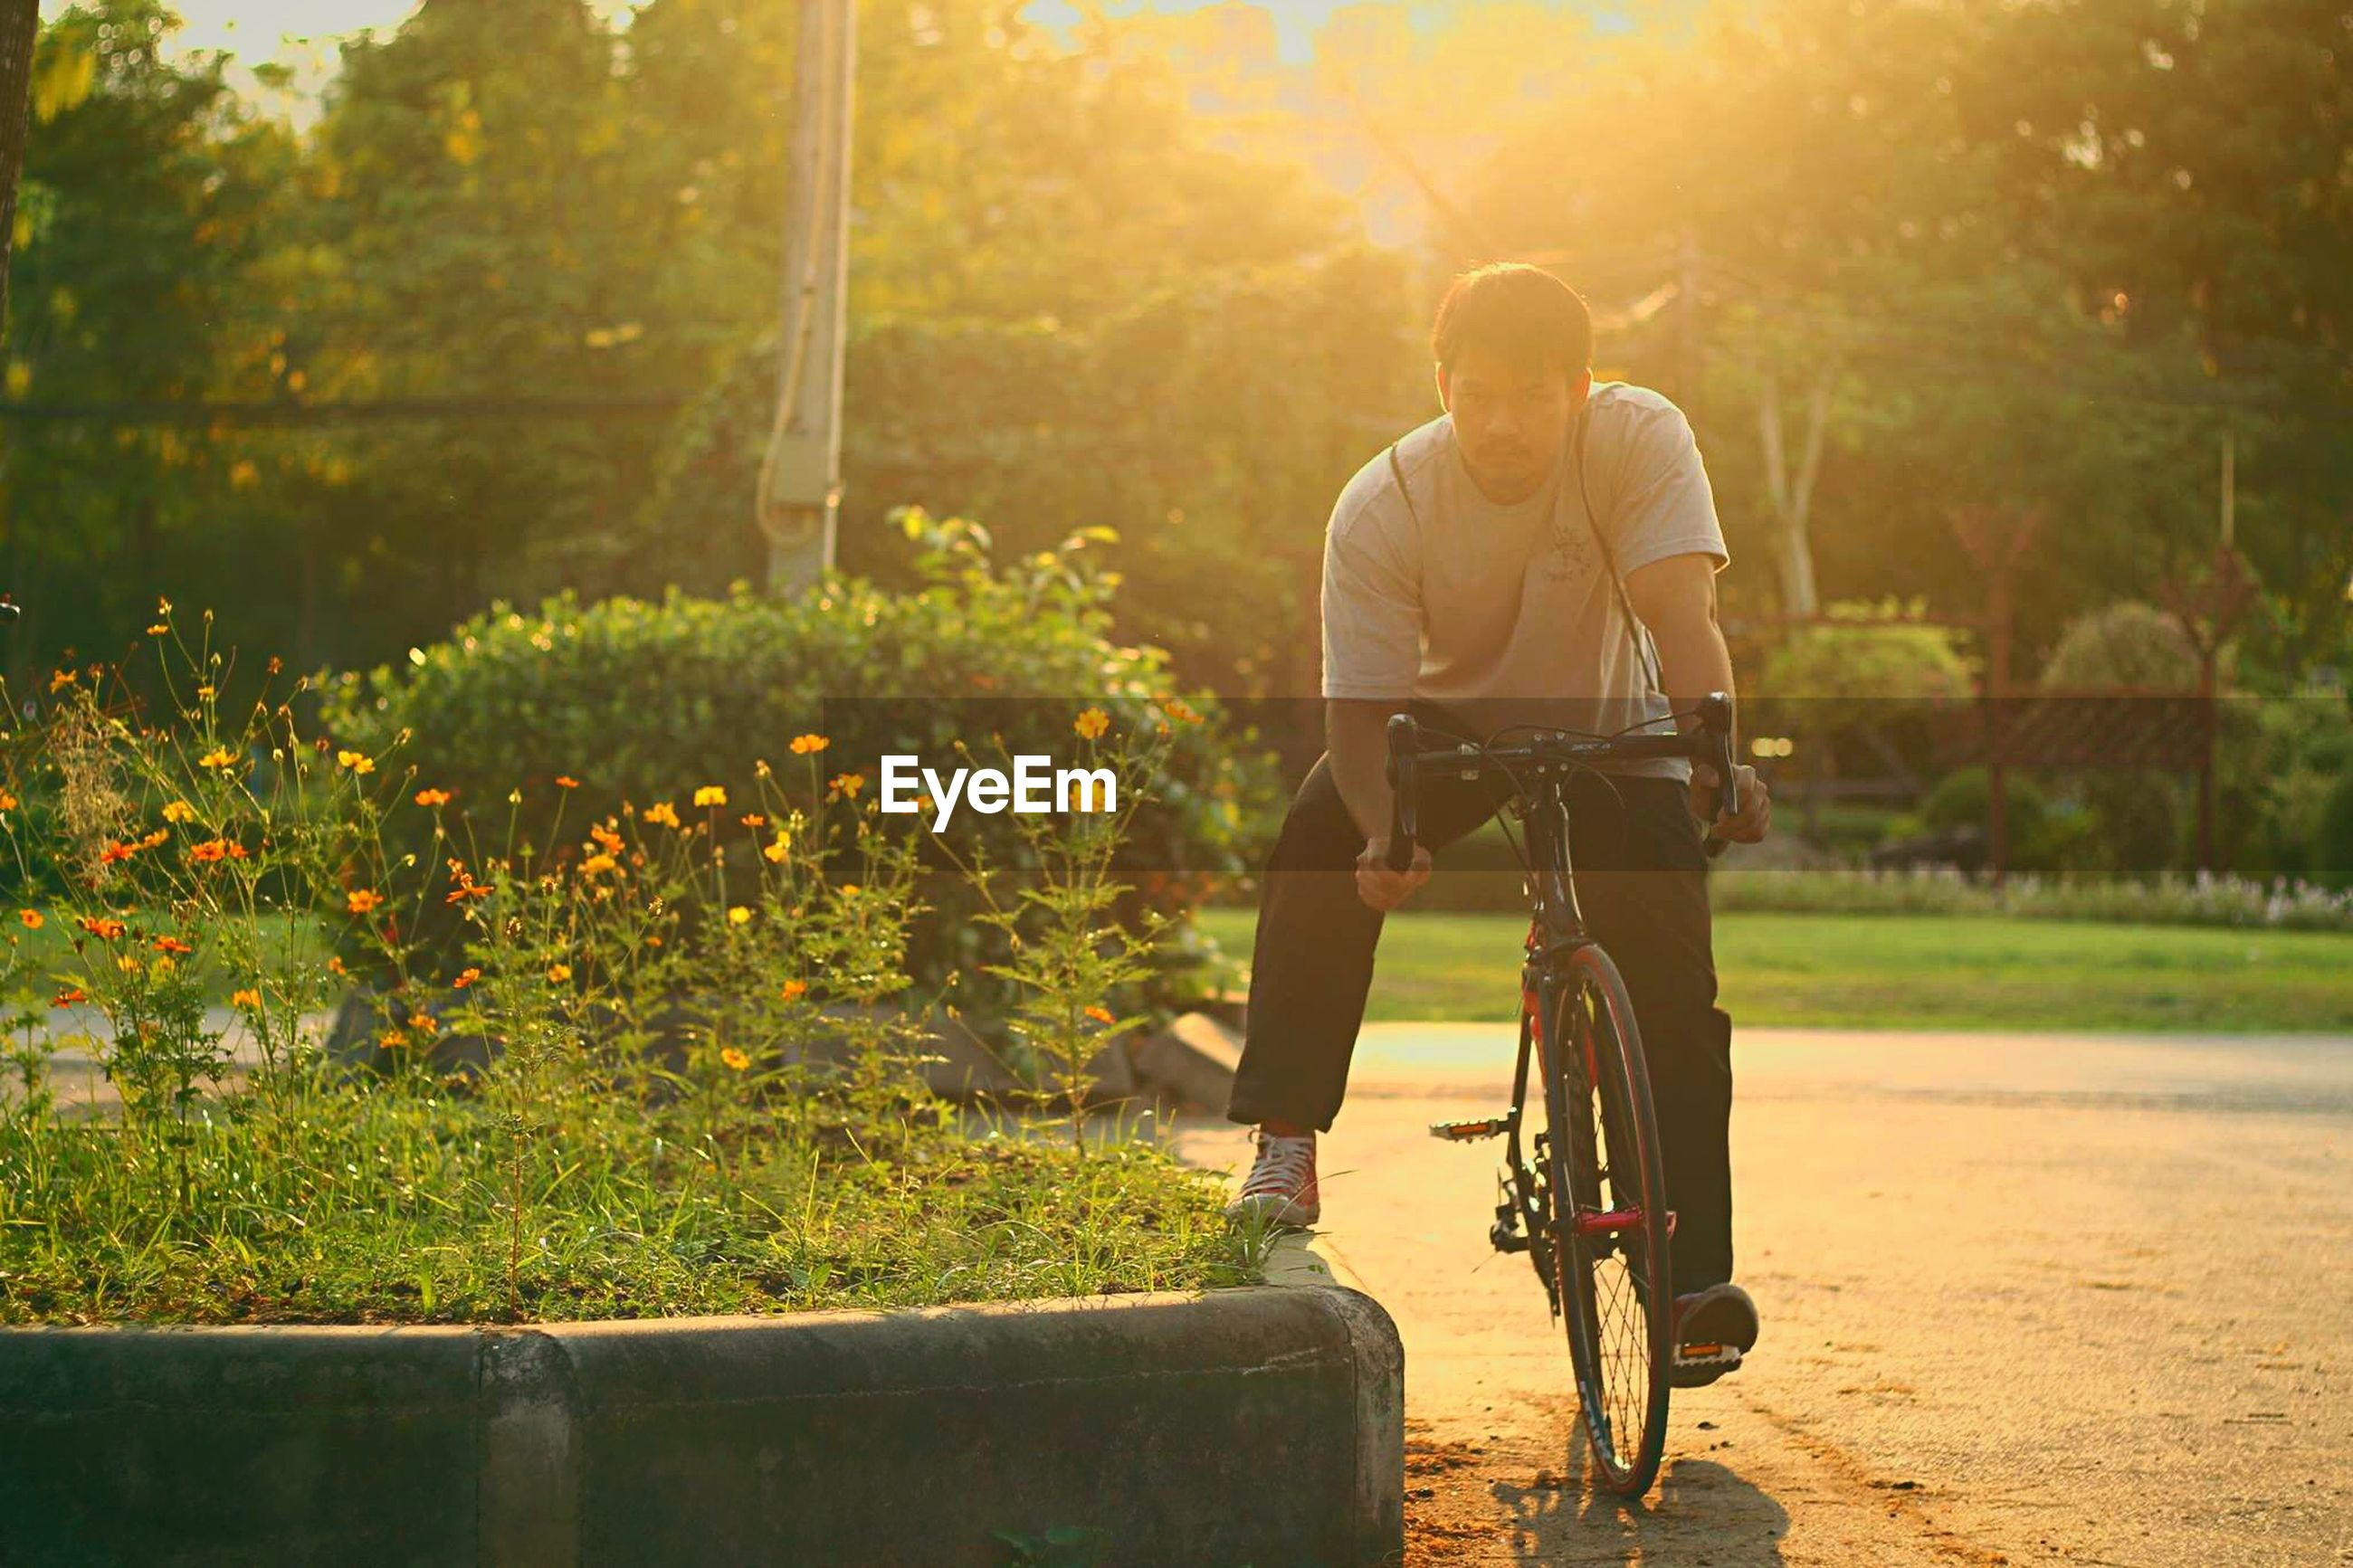 Portrait of young man riding bicycle against plants at park during sunset